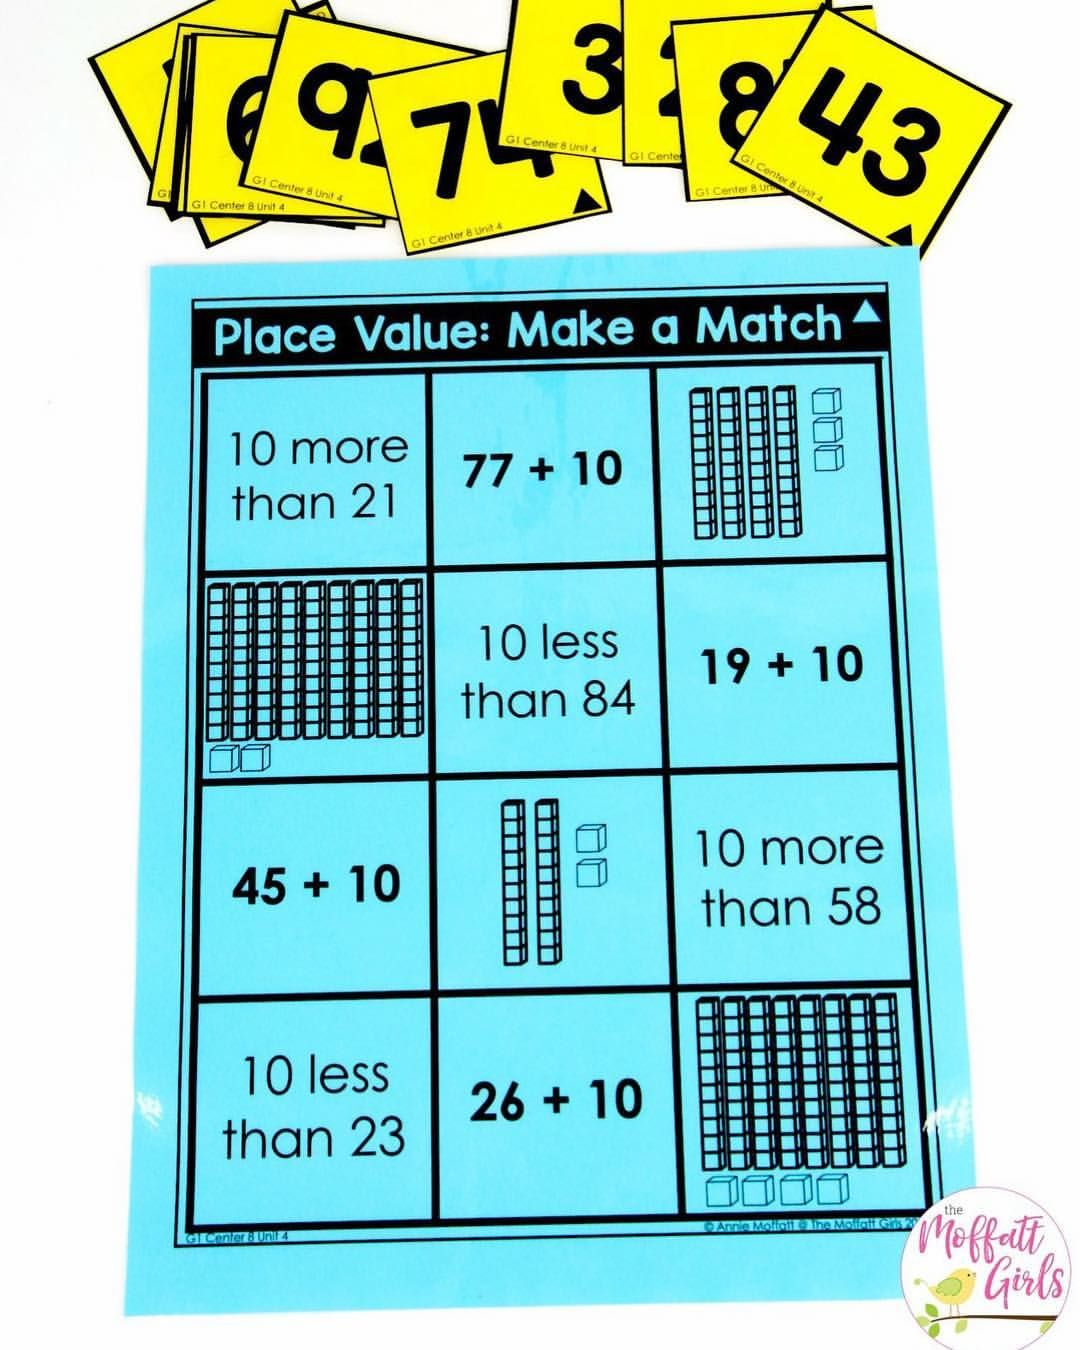 Place Value Games Galore! HandsOn and Engaging math